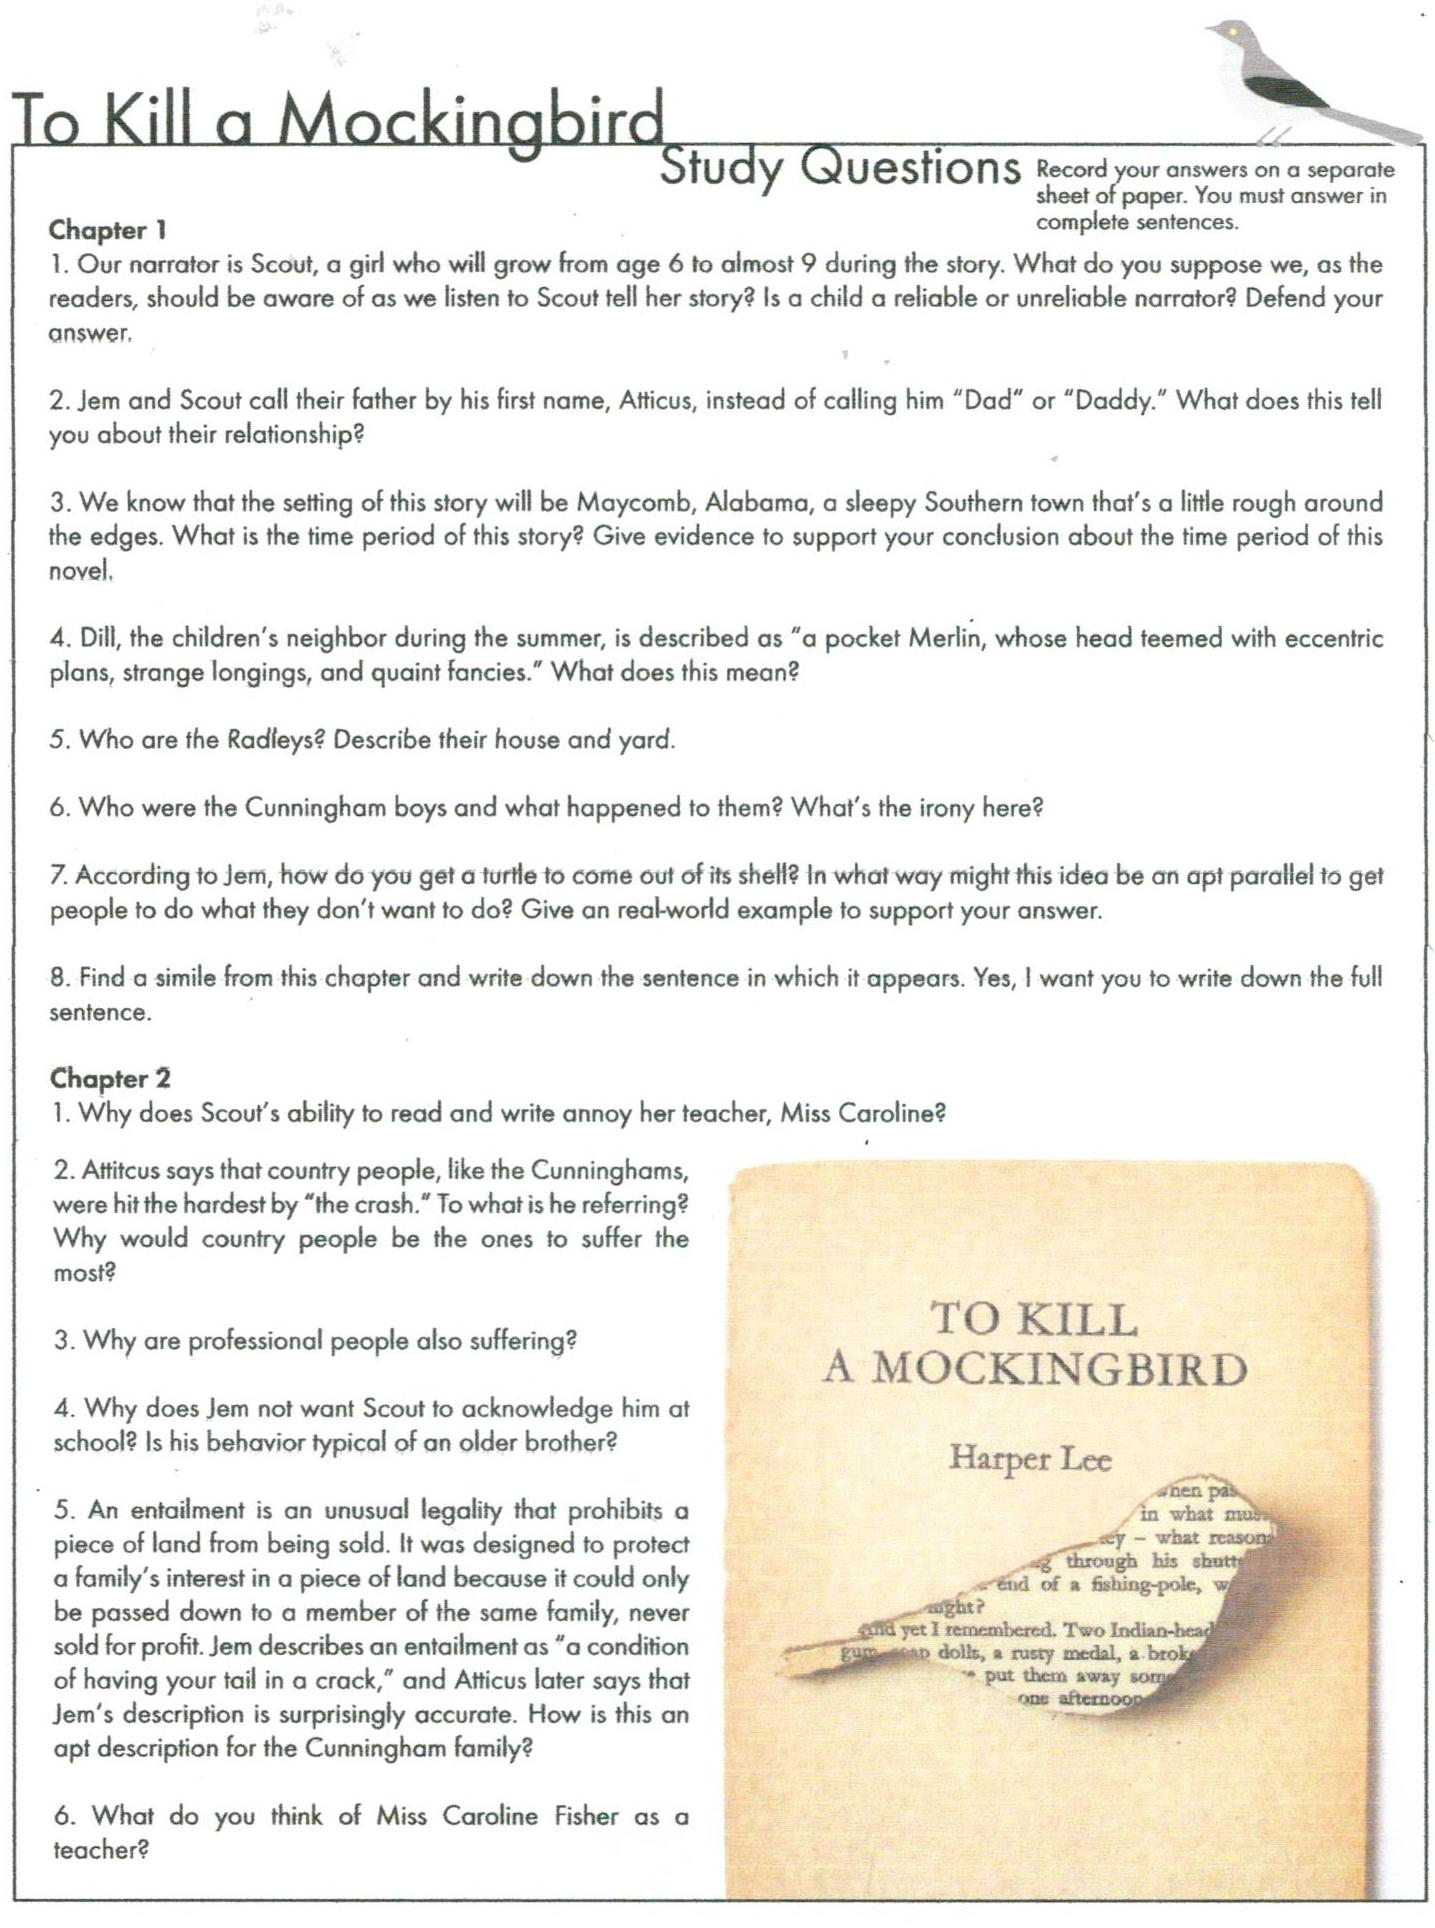 to kill a mockingbird questions 20 questions you have to ask your crush before dating them  to kill a mockingbird (sparknotes literature guide series) $595 | save 14 % shop now.